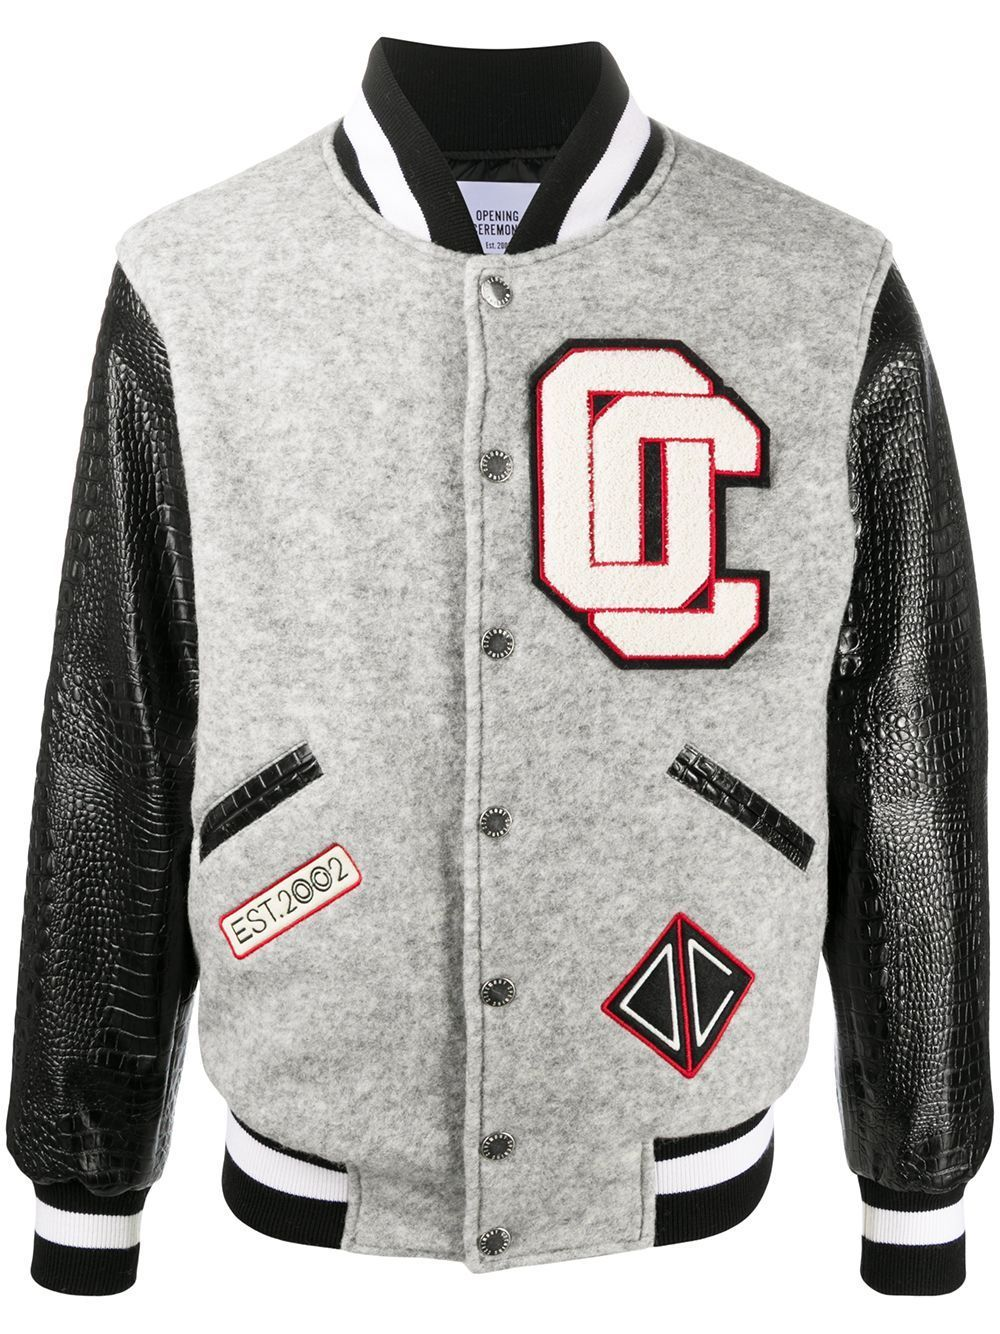 OPENING CEREMONY Varsity Jacket Grey